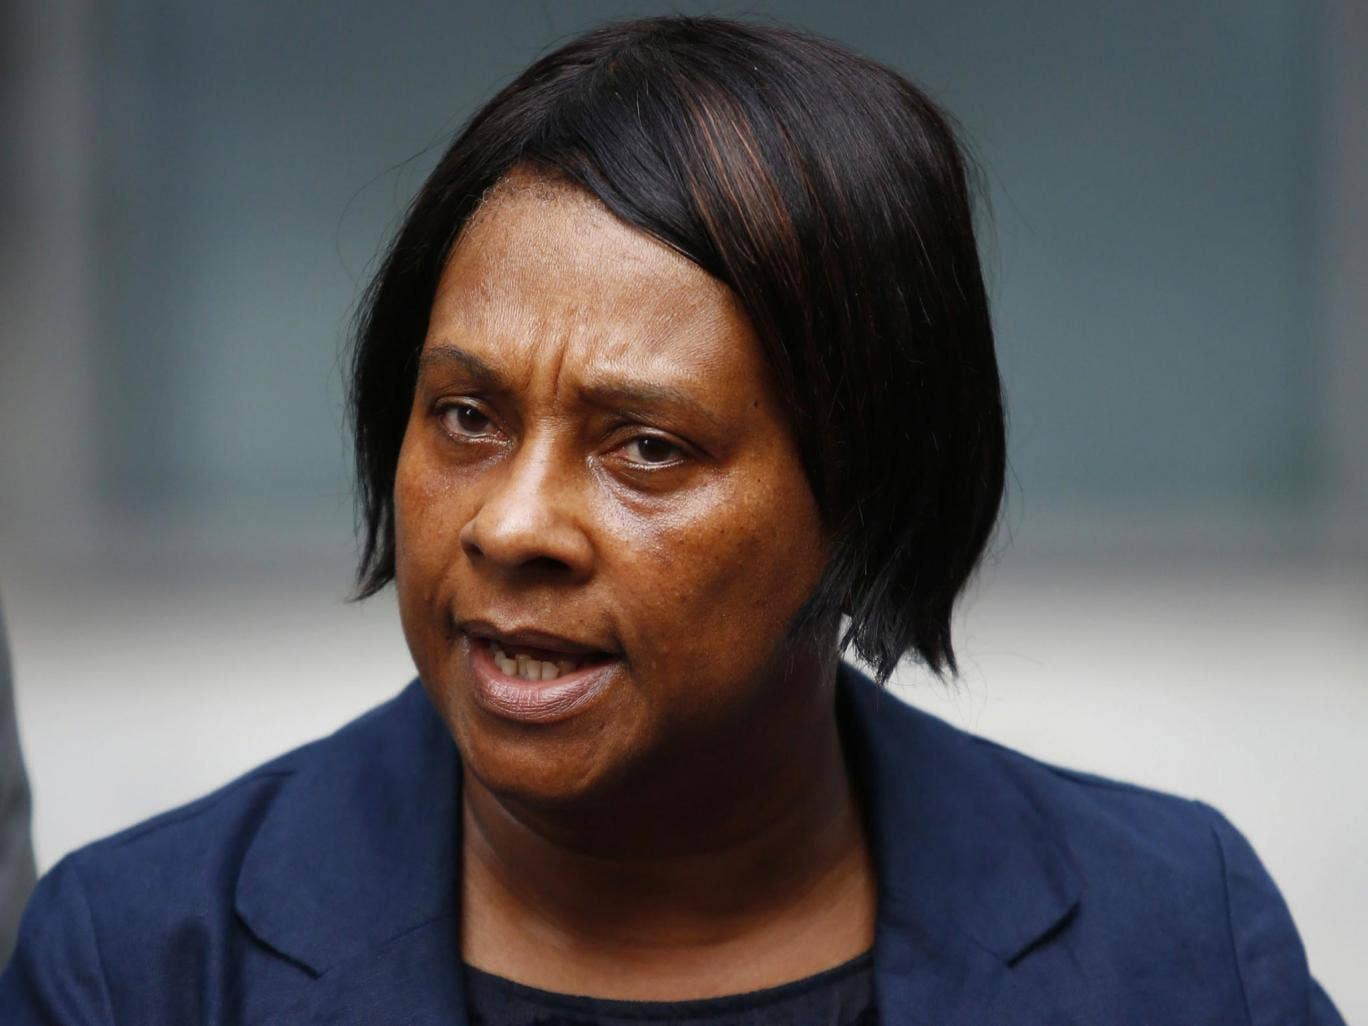 27 June 2013: Doreen Lawrence, mother of Stephen Lawrence, gives a statement to the media following a meeting with The Home Secretary, Theresa May (unseen) in central London